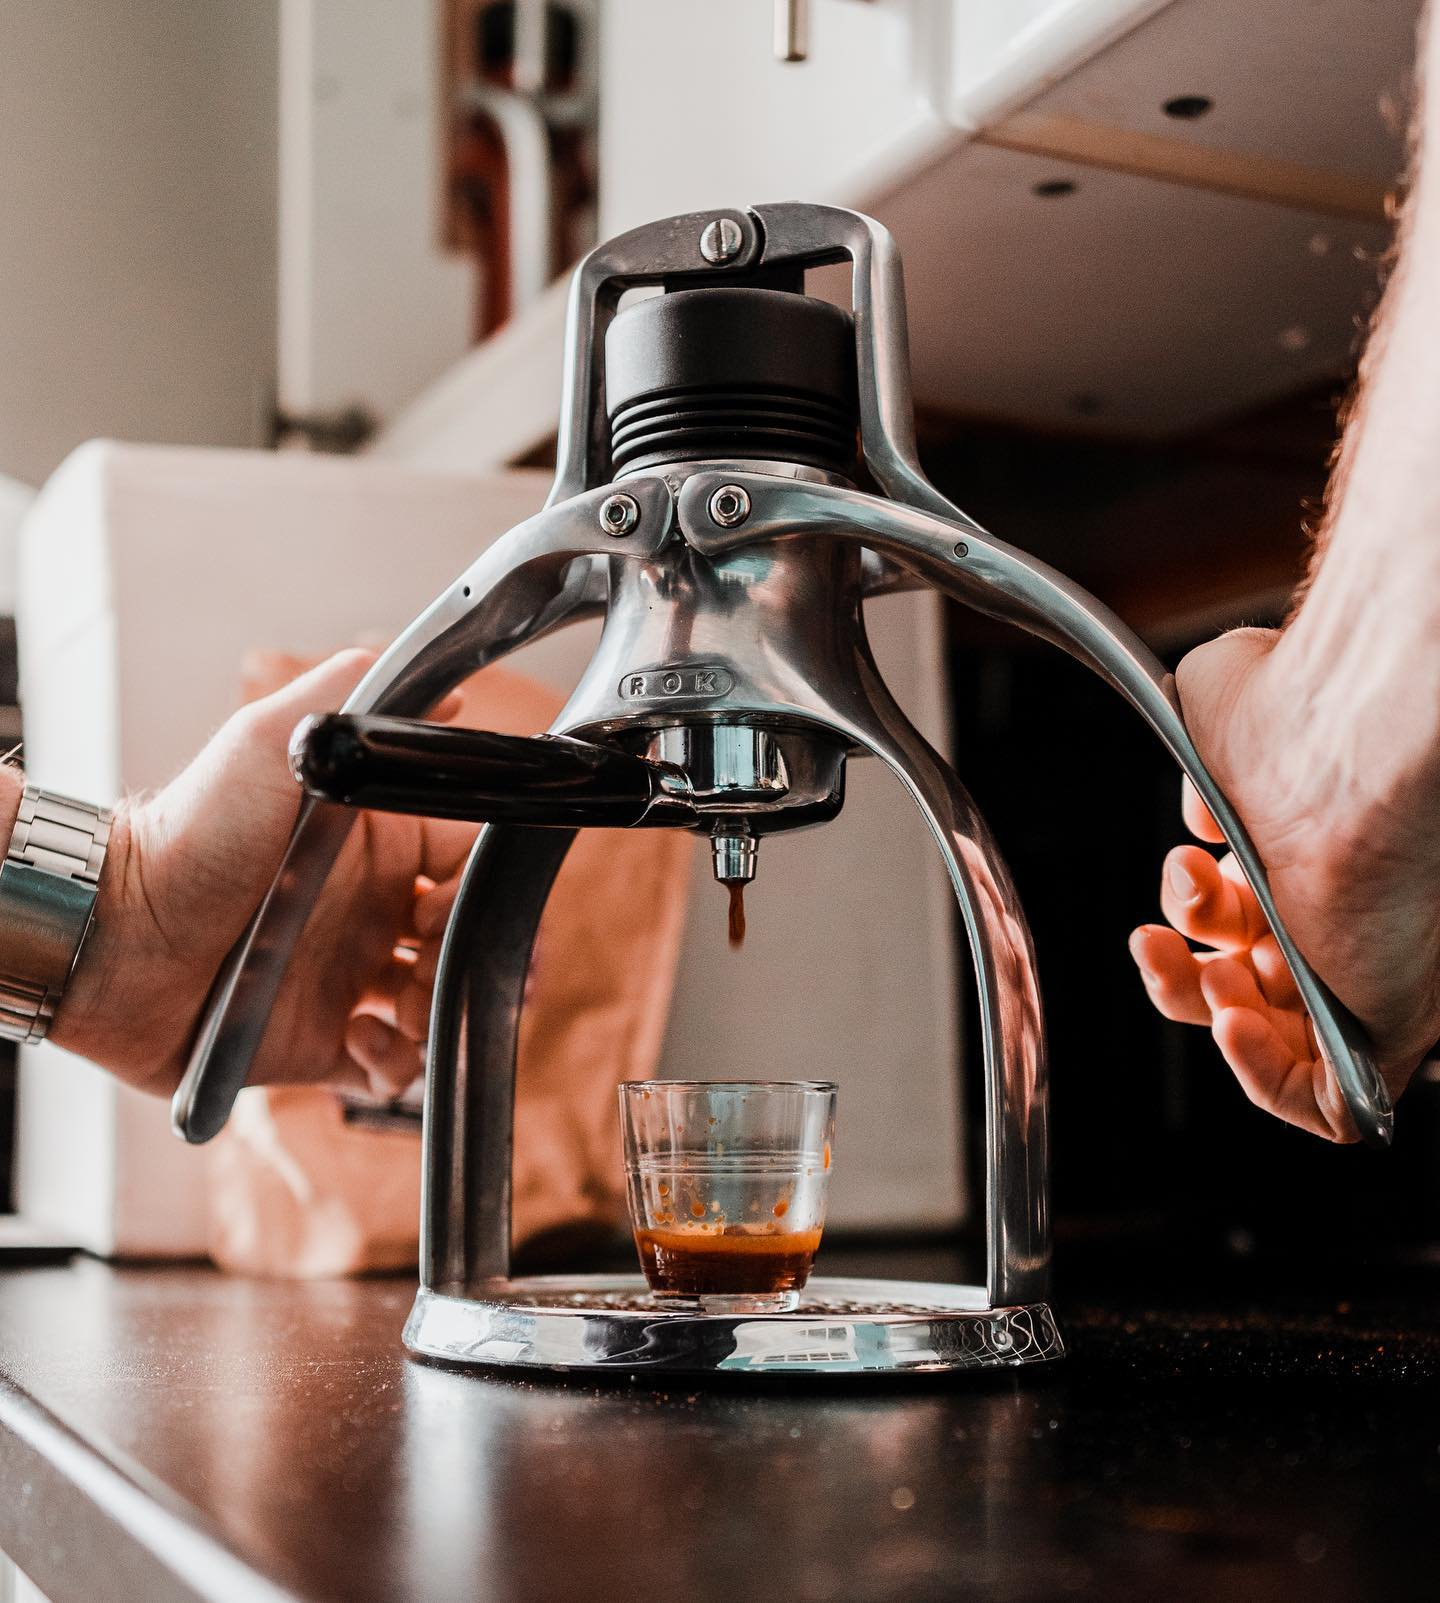 EspressoGC allows you to make espresso with the perfect crema. Try using freshly ground coffee to get better results👏